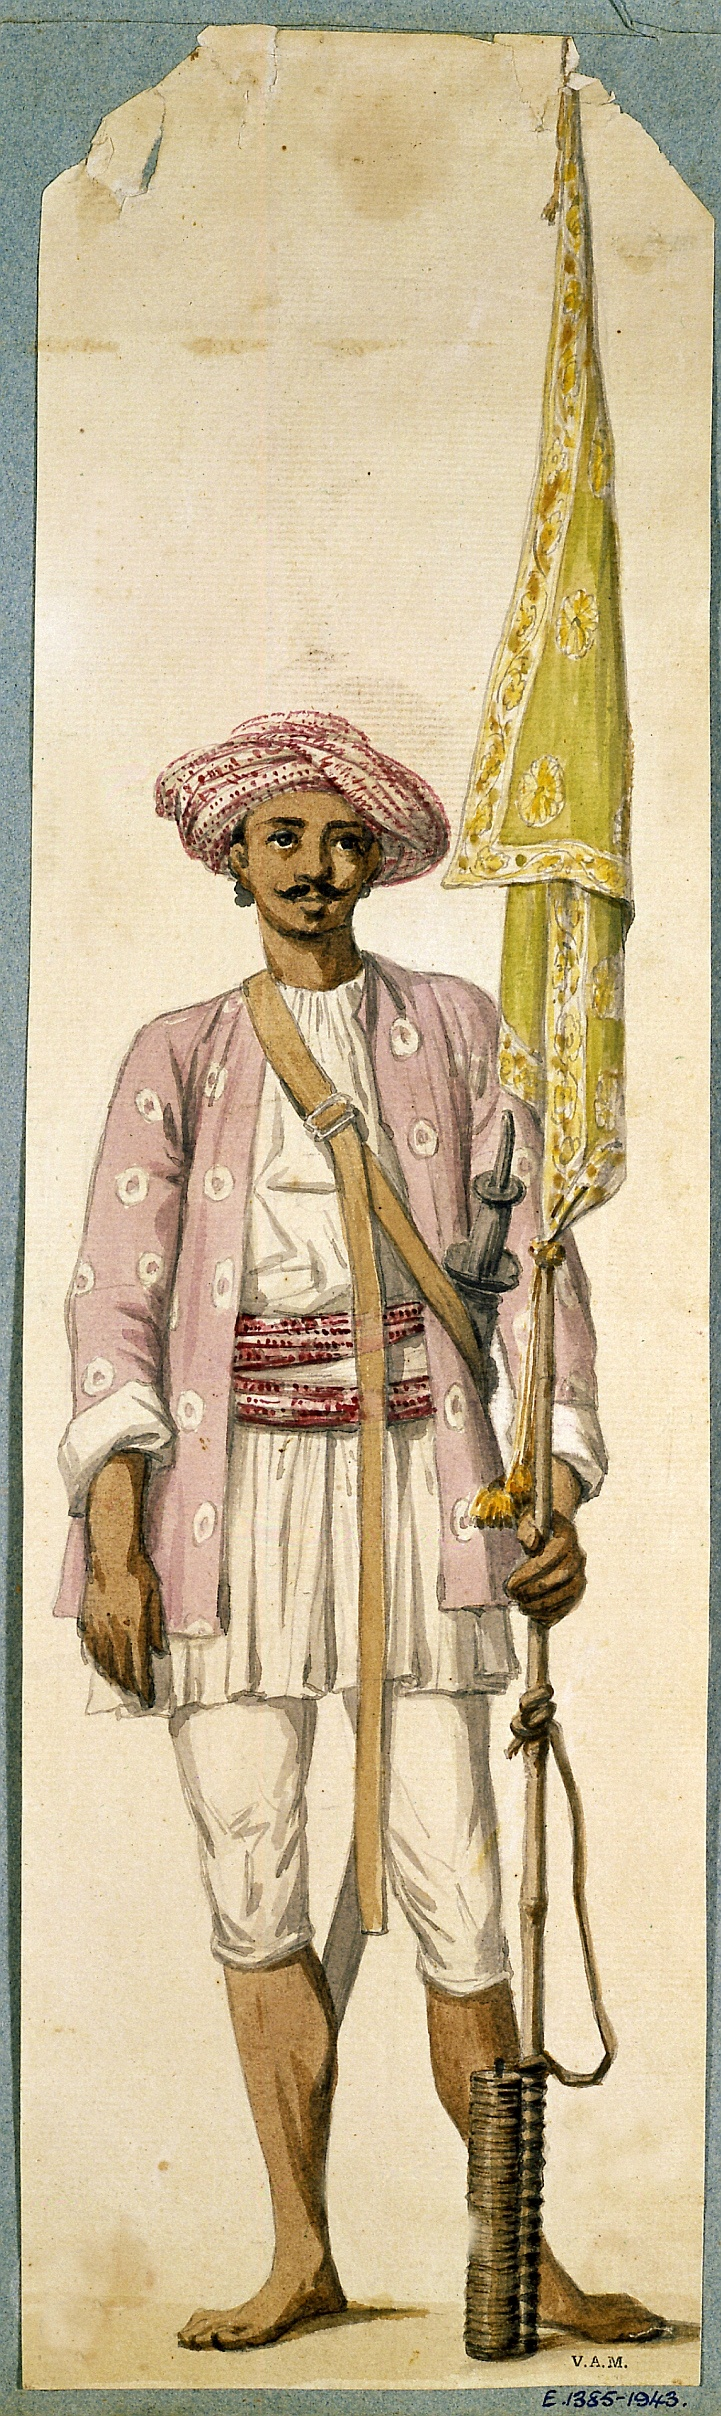 Soldier of Tipu Sultans army, India.  Tipu Sultan (TheTiger of Mysore) November 1750 to May 1799 was the ruler of the Sultanate of Mysore. He was the son of Hyder Ali, at that time an officer in the Mysorean army, and his second wife, Fatima or Fakhr-un-Nissa. During Tipu's childhood, his father rose to take power in Mysore, and Tipu became rule of the kingdom upon his father's death. In addition to his role as ruler, he was a scholar, soldier, and poet. He was murdered by the British in…